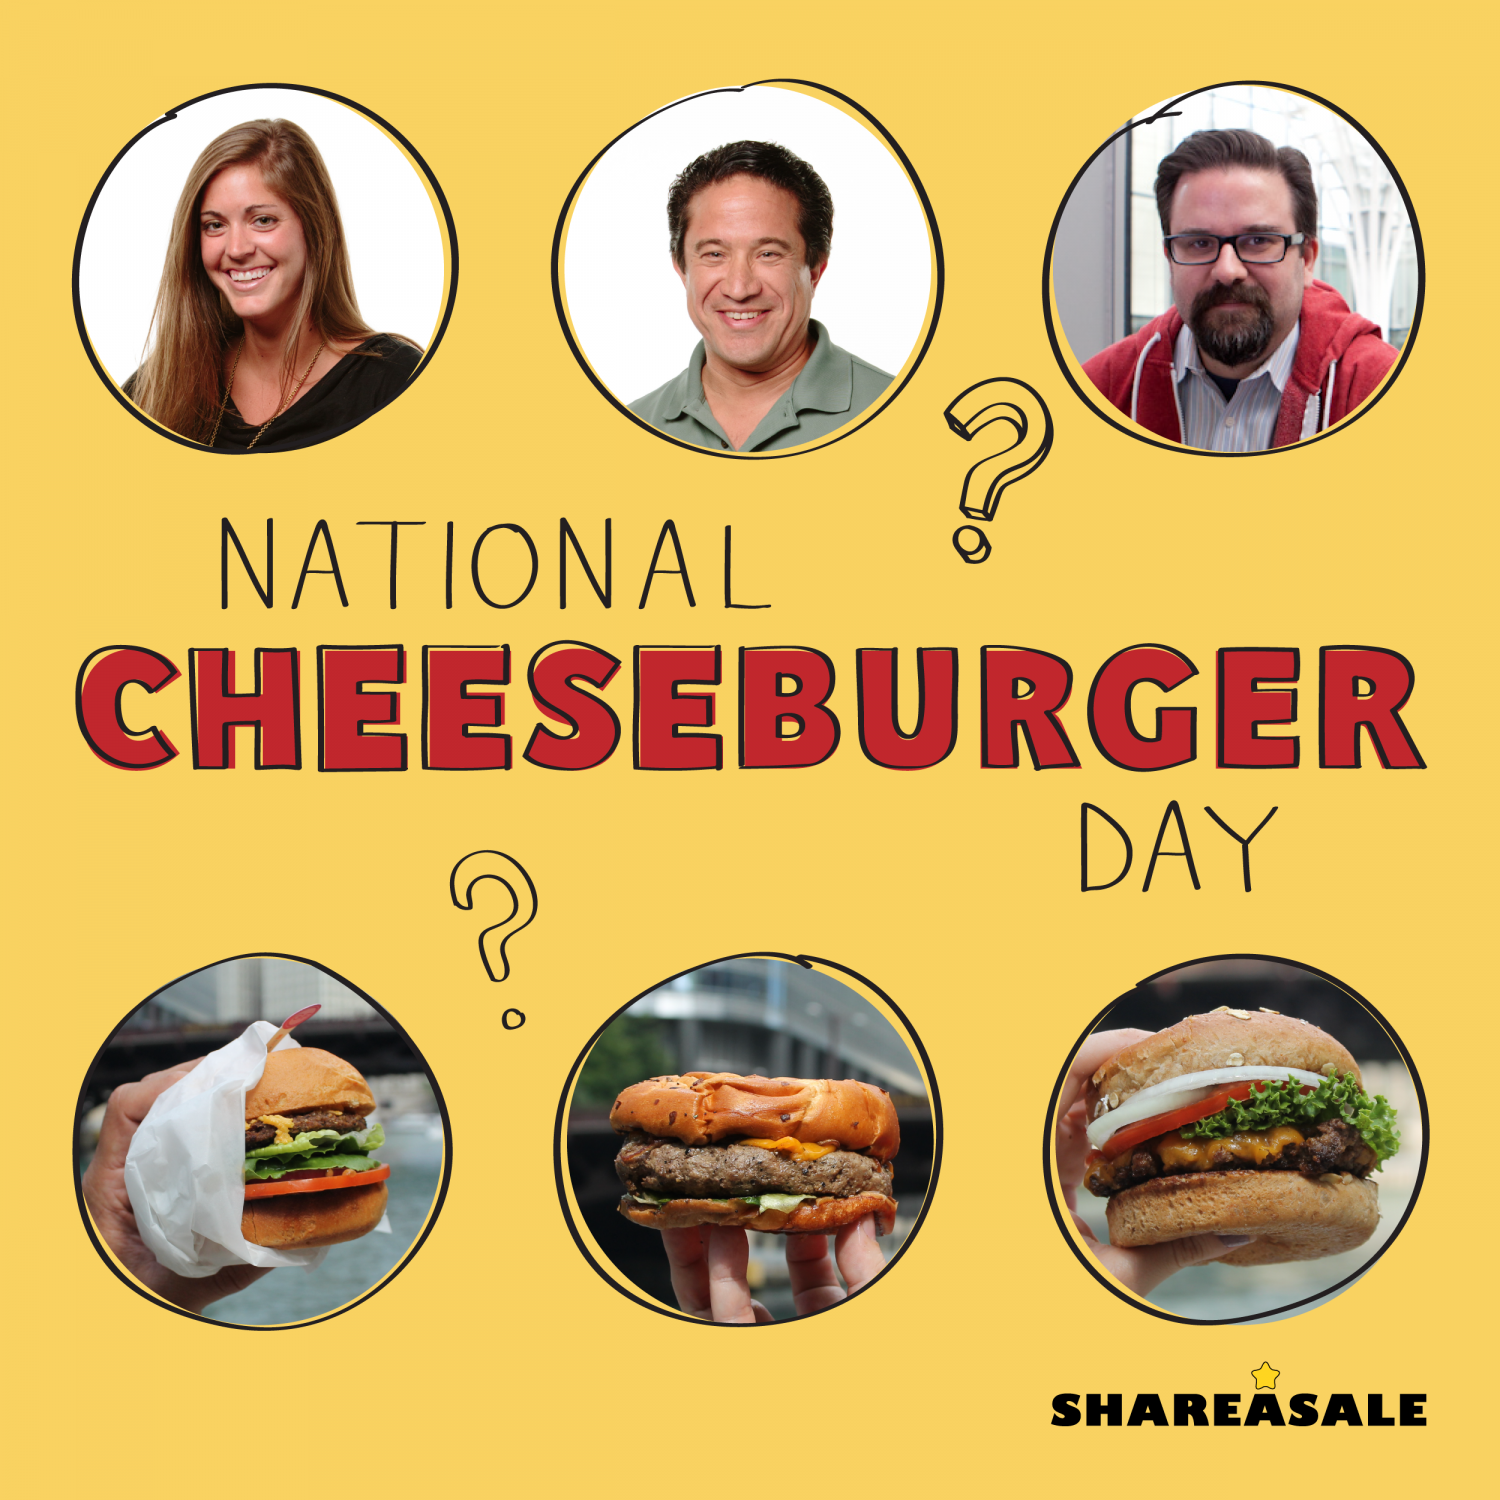 Happy National Cheeseburger Day!